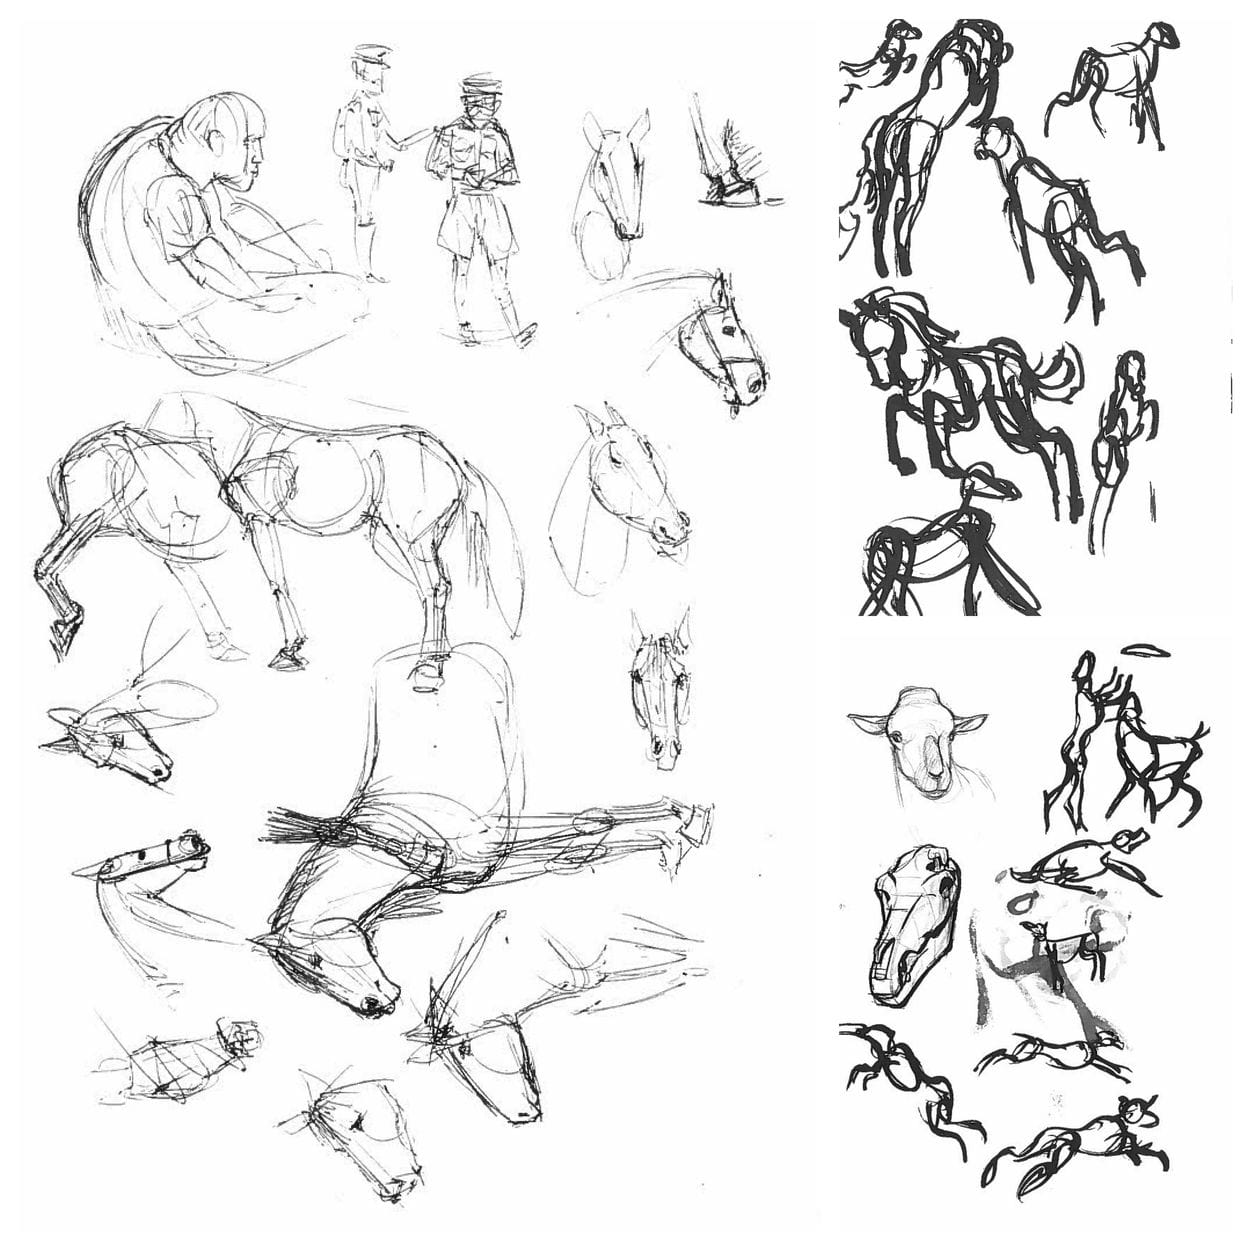 Royal Winter Fair 2018 sketches - by year 3 Illustration student Theo Murgan & year 3 Concept Art student Soho Park